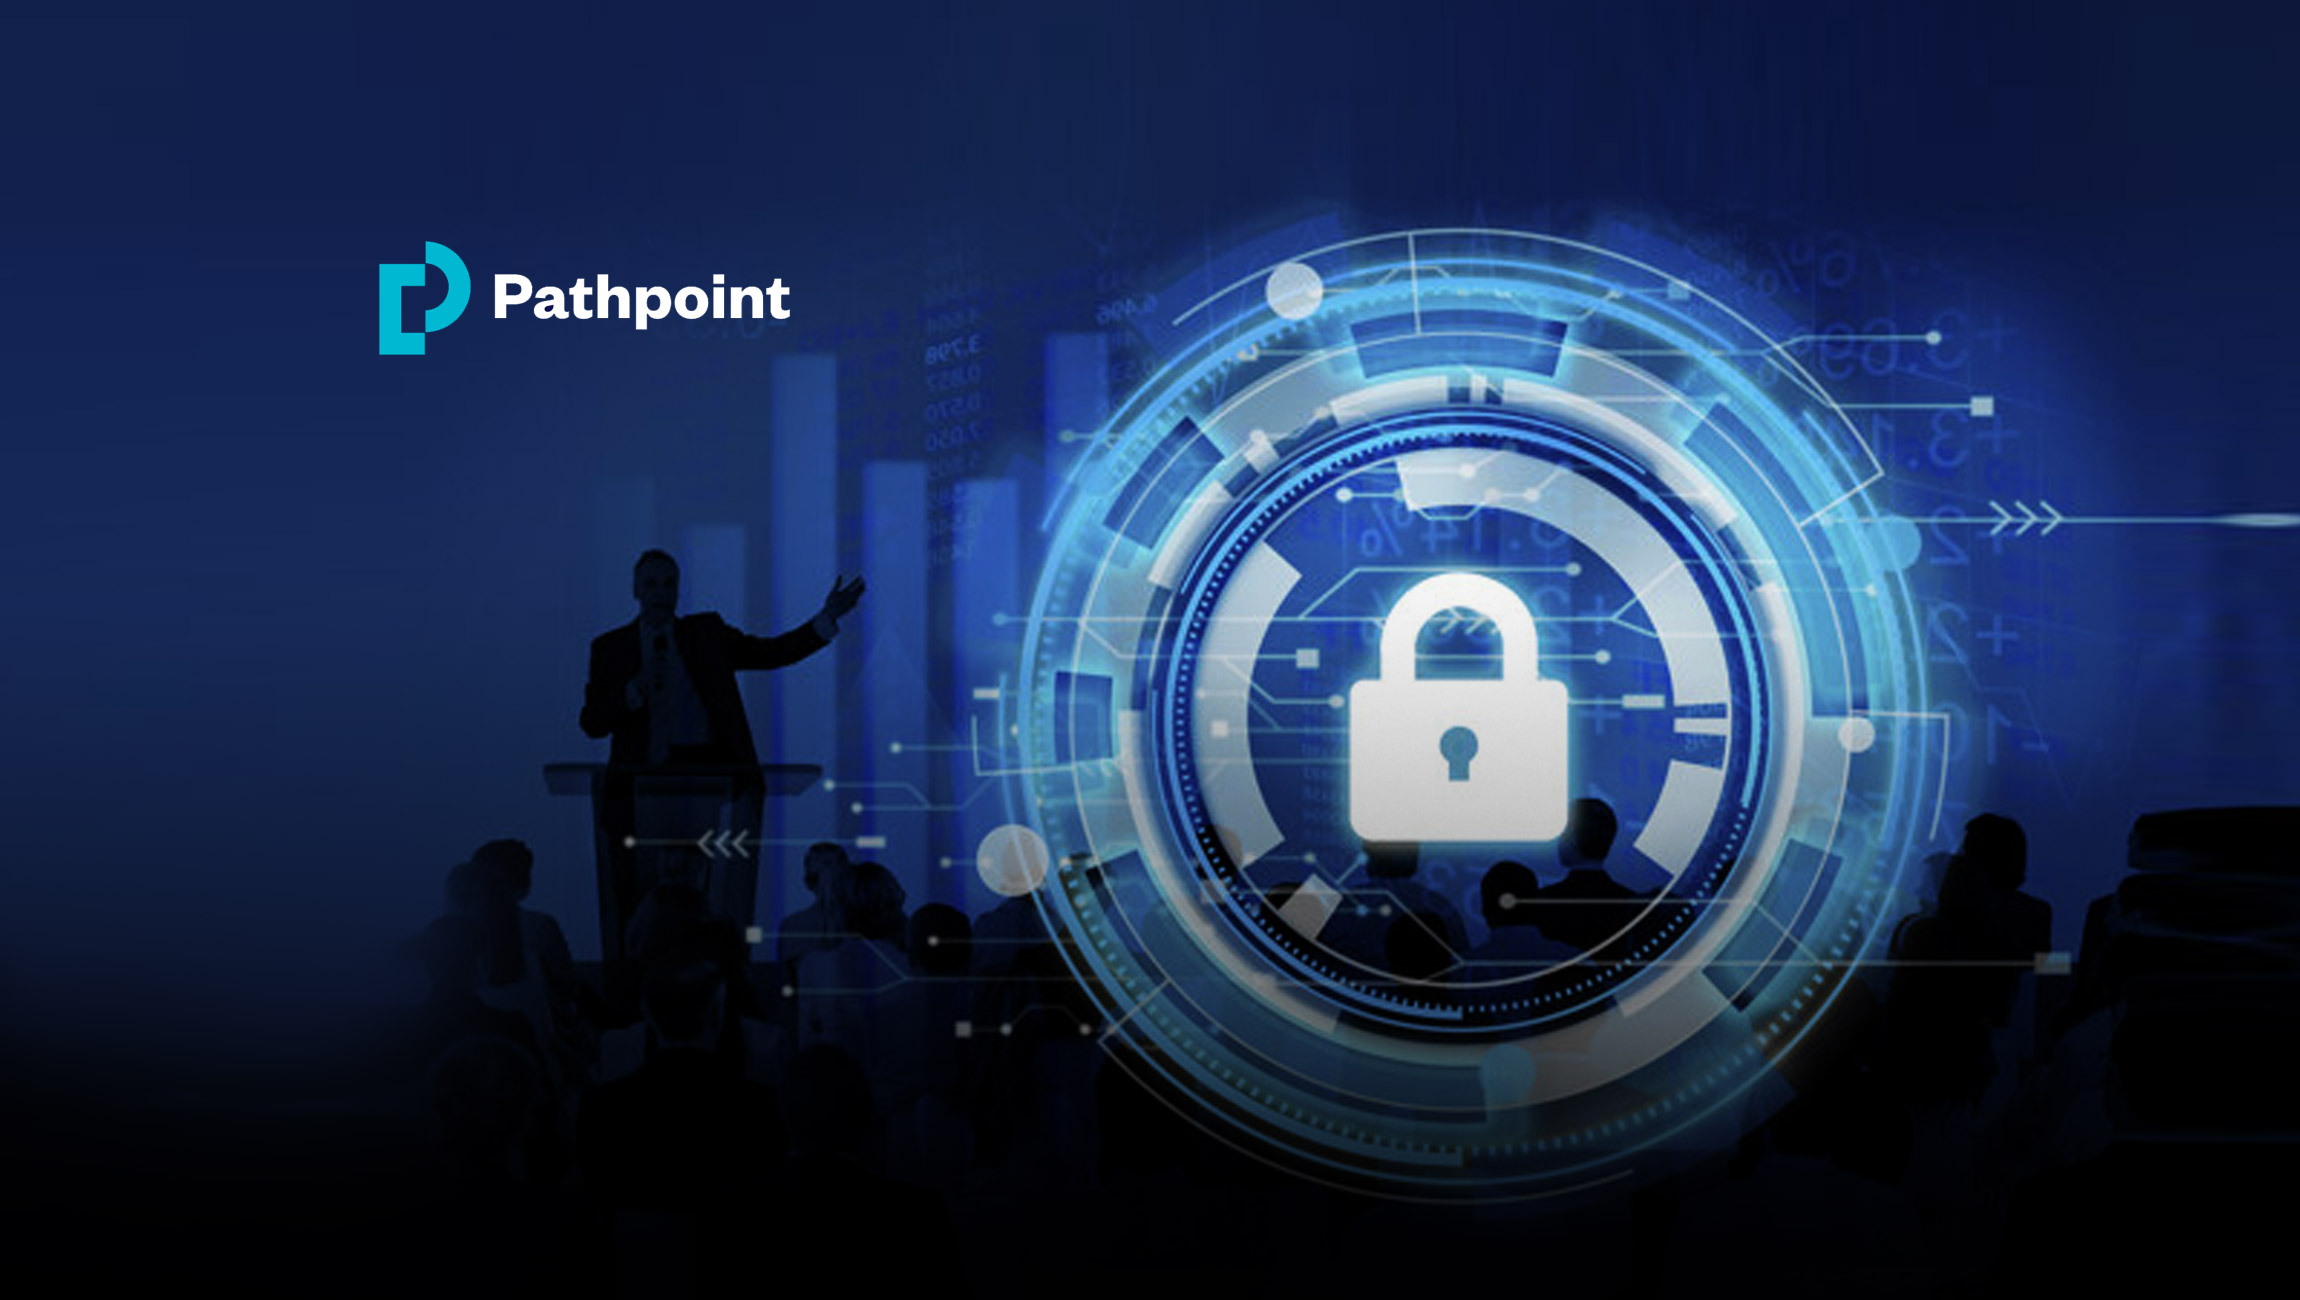 Pathpoint Launches Cyber Insurance's First Multi-Carrier Instant Quote Platform, Delivering Multiple Quotes In 2 Minutes